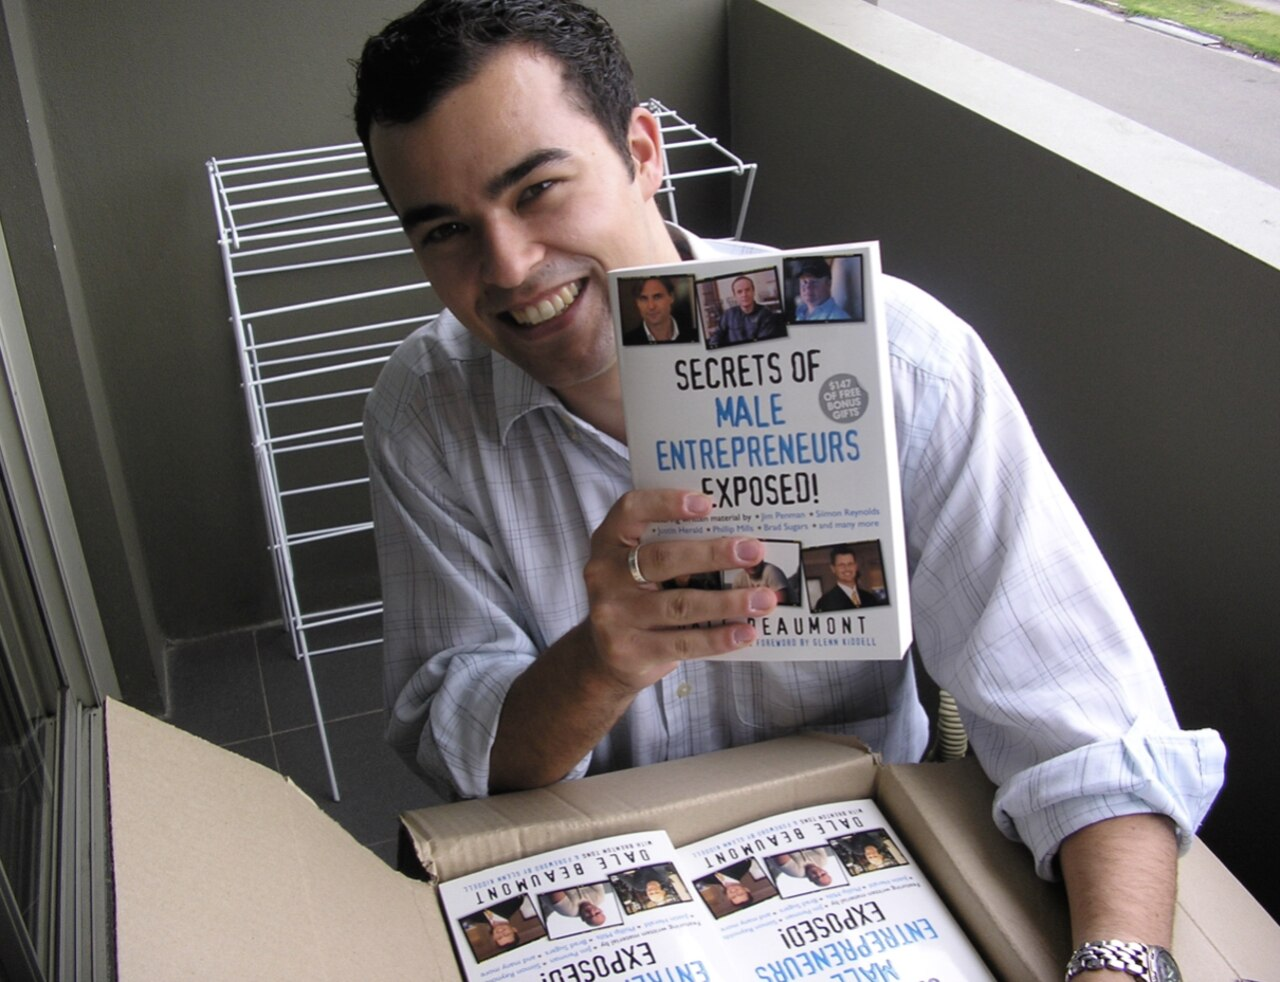 He created the successful Secrets Exposed series.